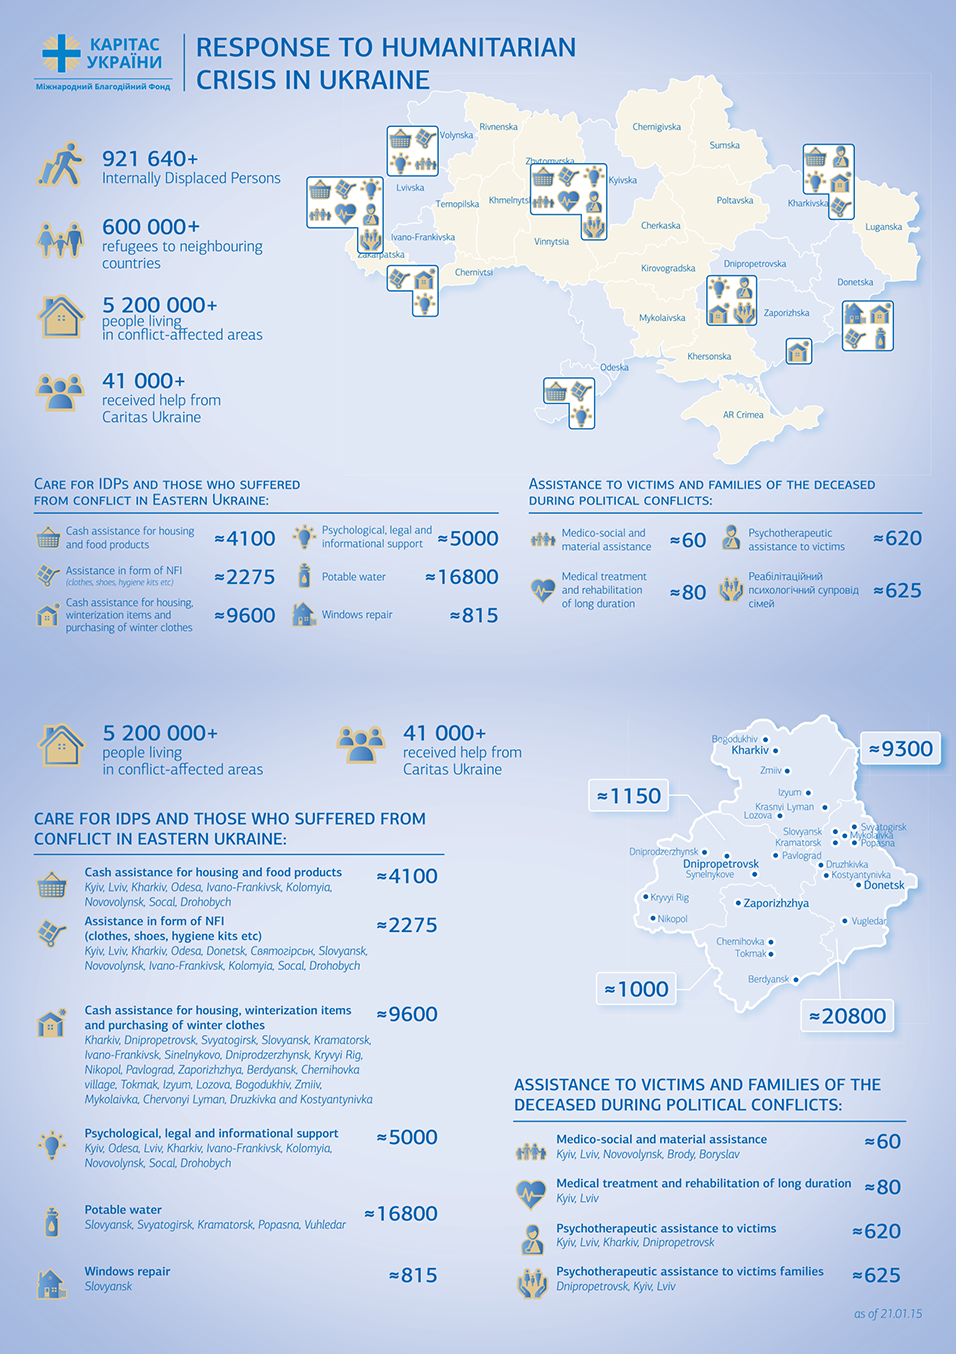 Response to Humanitarian Crisis in Ukraine